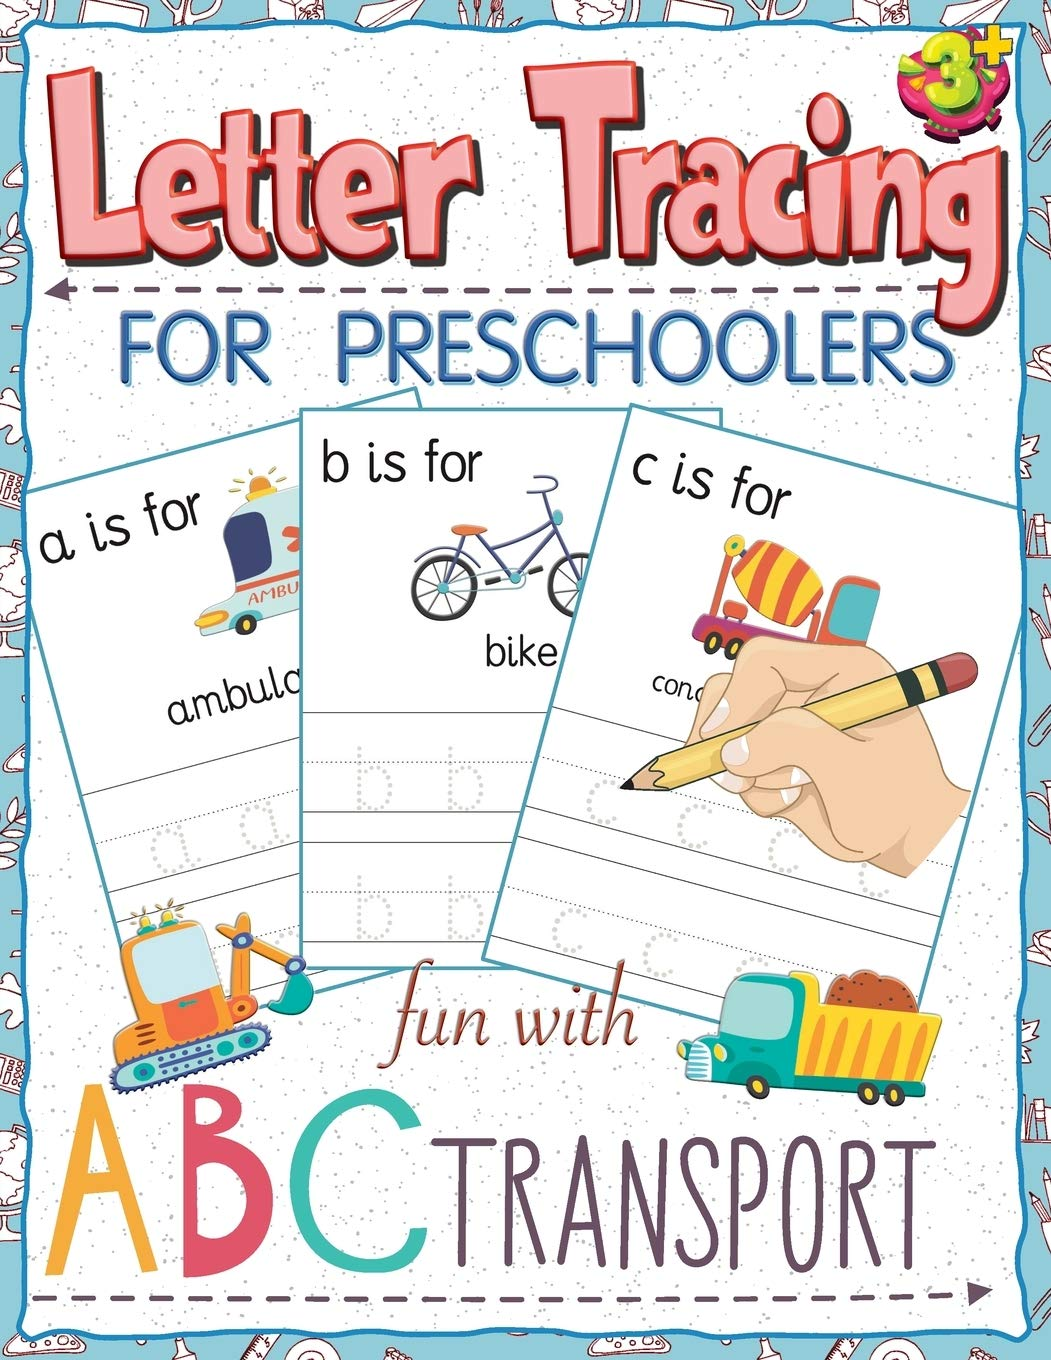 Letter Tracing For Preschoolers Fun With Abc Transport Workbook For Alphabet Tracing Practice Books Paper For Preschool Toddler Or Kindergarten Pk For Transportation Theme 8 5x11 Inches Publishing Play And Learn 9781701828148